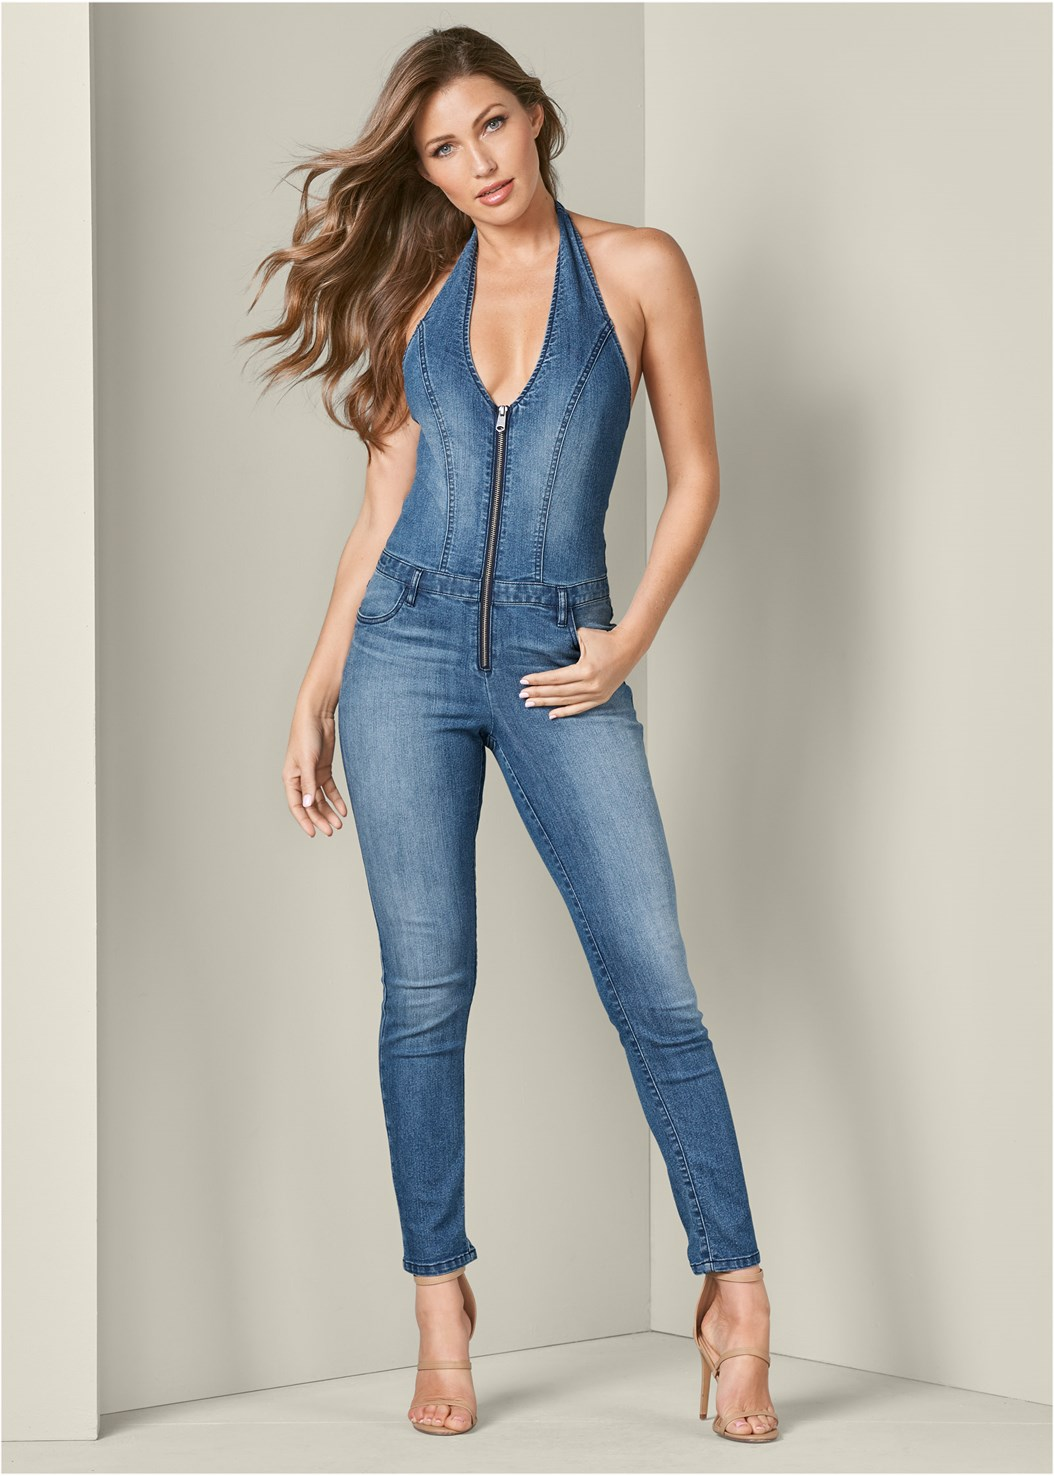 Denim Jumpsuit,High Heel Strappy Sandals,Long Ribbed Duster,Circle Detail Booties,Medallion Earrings